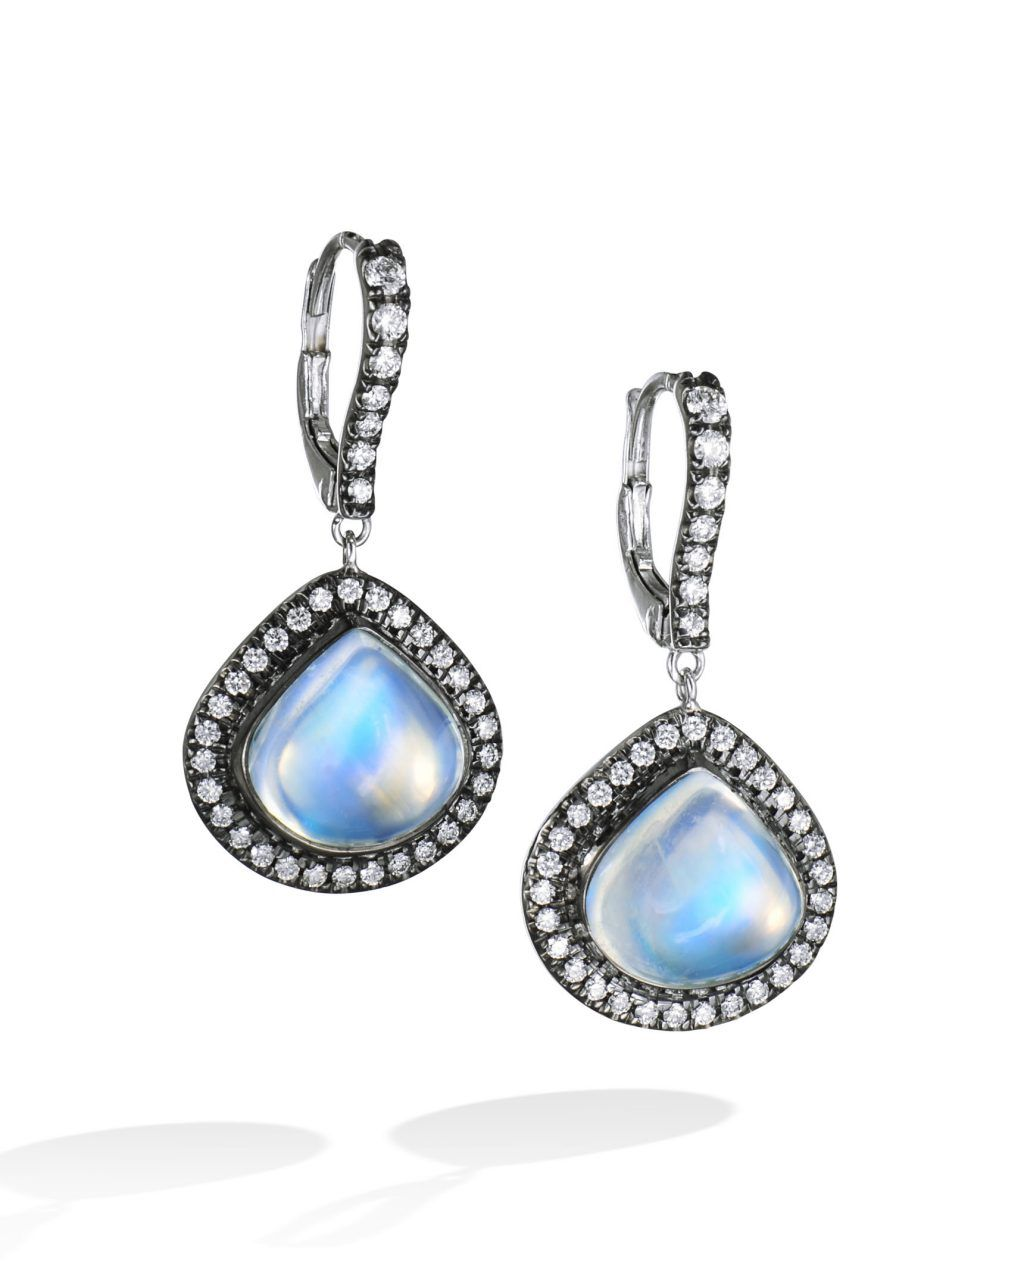 773eee363 18 karat white gold earrings set with 2 pear shaped royal blue moonstone  centers (12.33 CTW) surrounded by round brilliant cut diamonds (0.61 CTW).